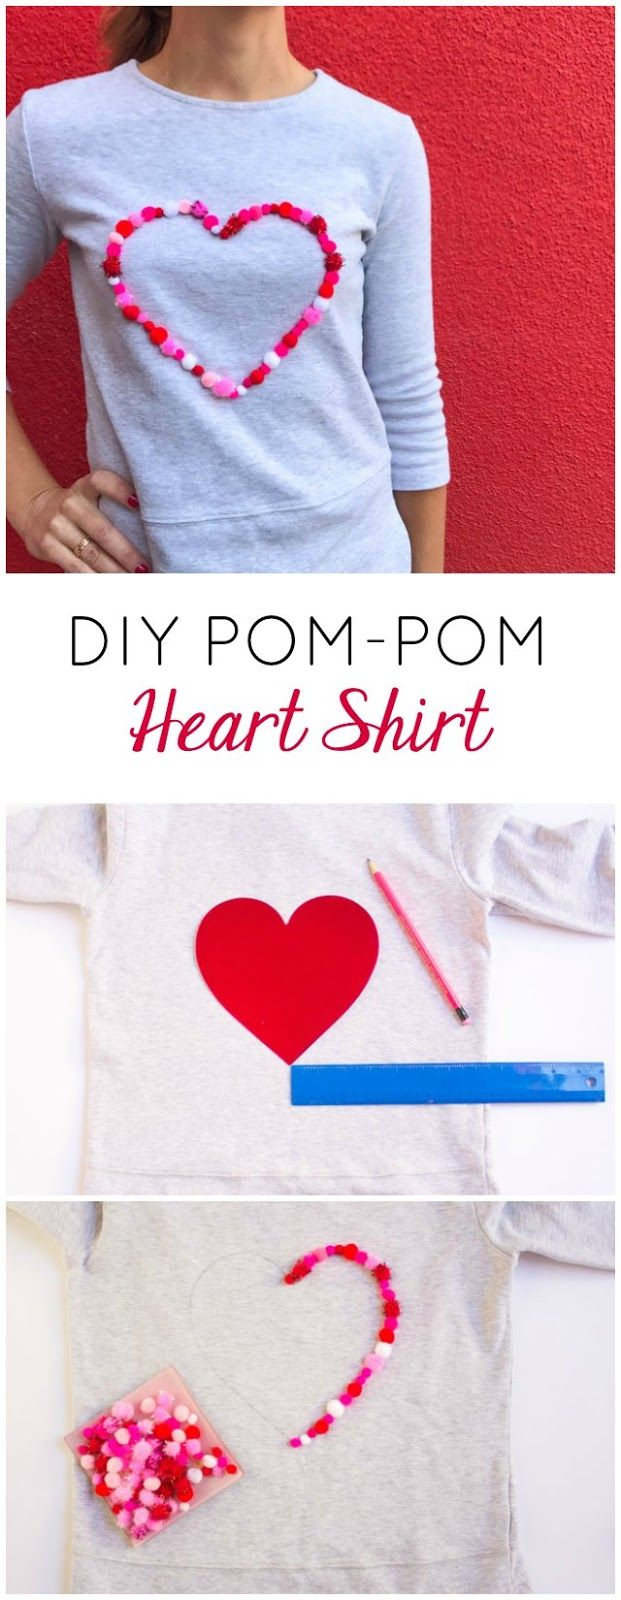 DIY Pom-Pom Heart Shirt | Design Improvised